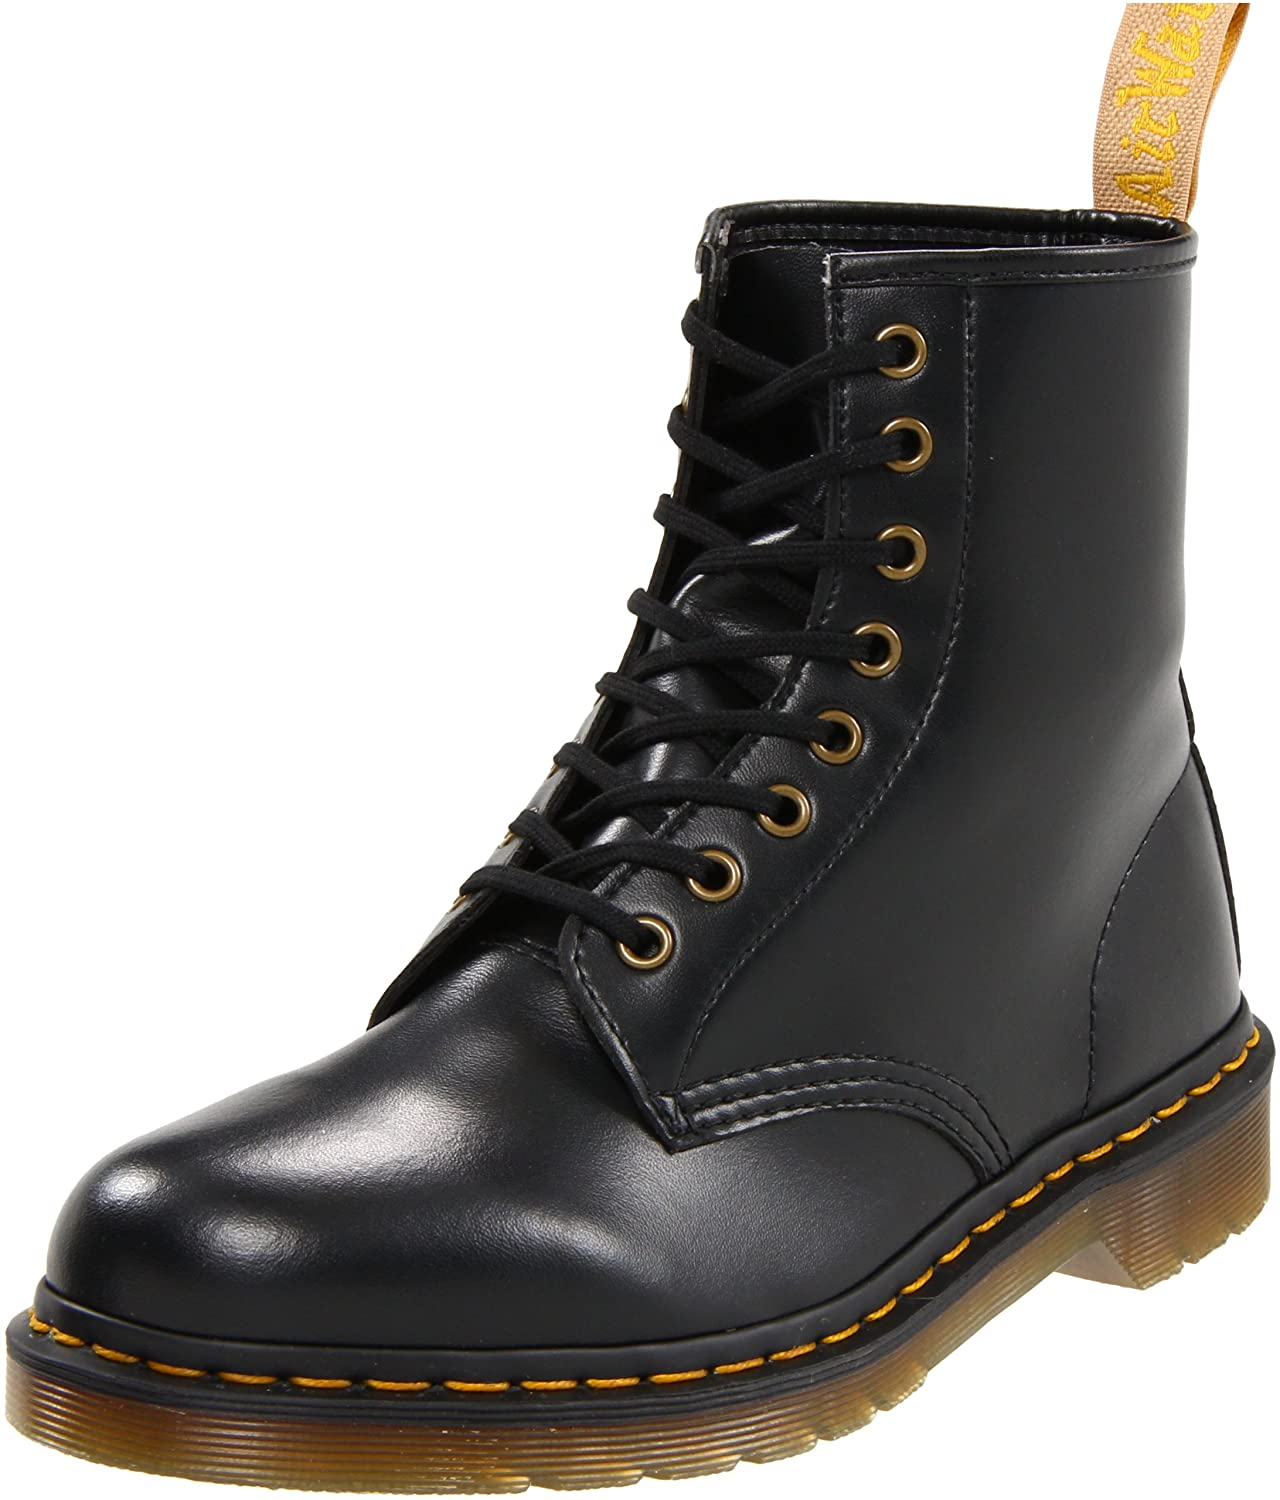 Dr. Martens Vegan 1460 Boot B004SI1QCG UK 3 (US Women's 5 M)|Black Fleix Rub